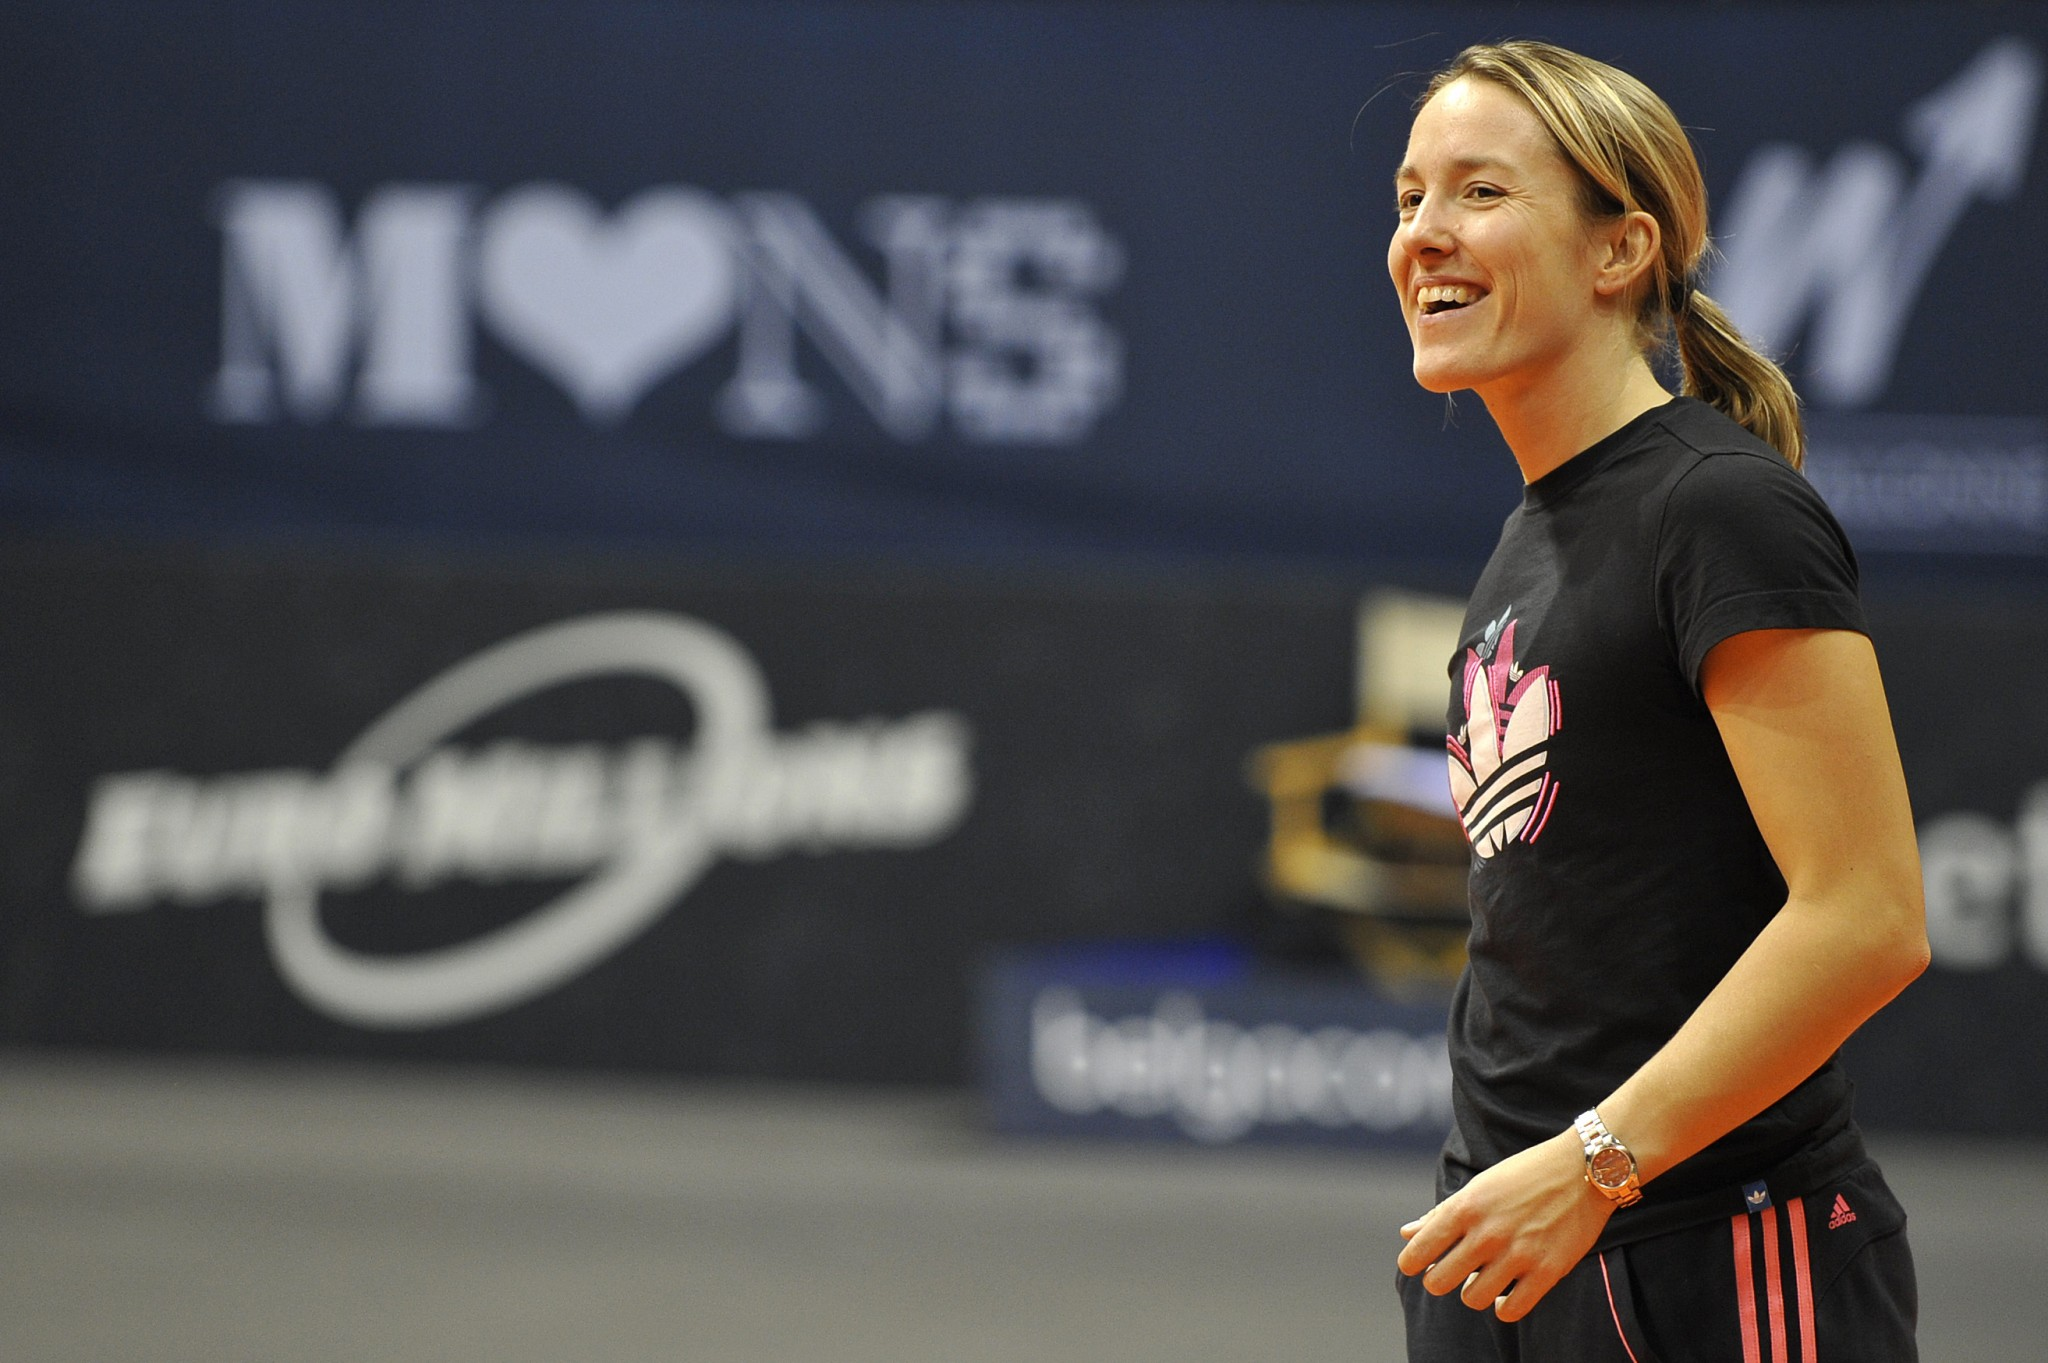 Watch Justine Henin 7 Grand Slam singles titles video